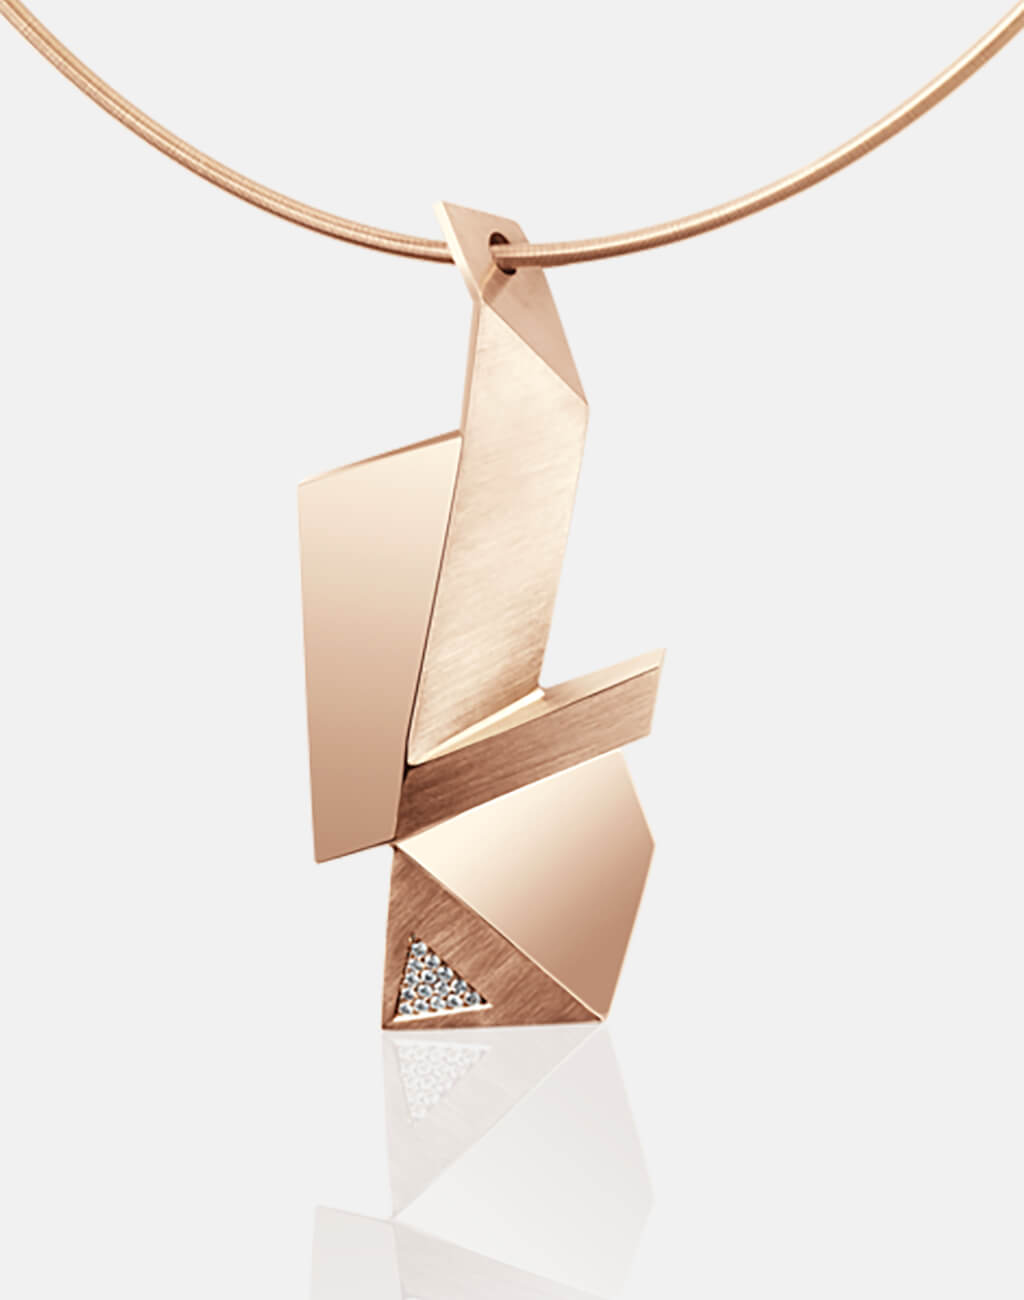 Cryptone | Collier, Kette, Kettenanhänger - 750/- Roségold, Diamanten-Brillanten | necklace, pendant - 18kt rose gold, diamonds | SYNO-Schmuck.com